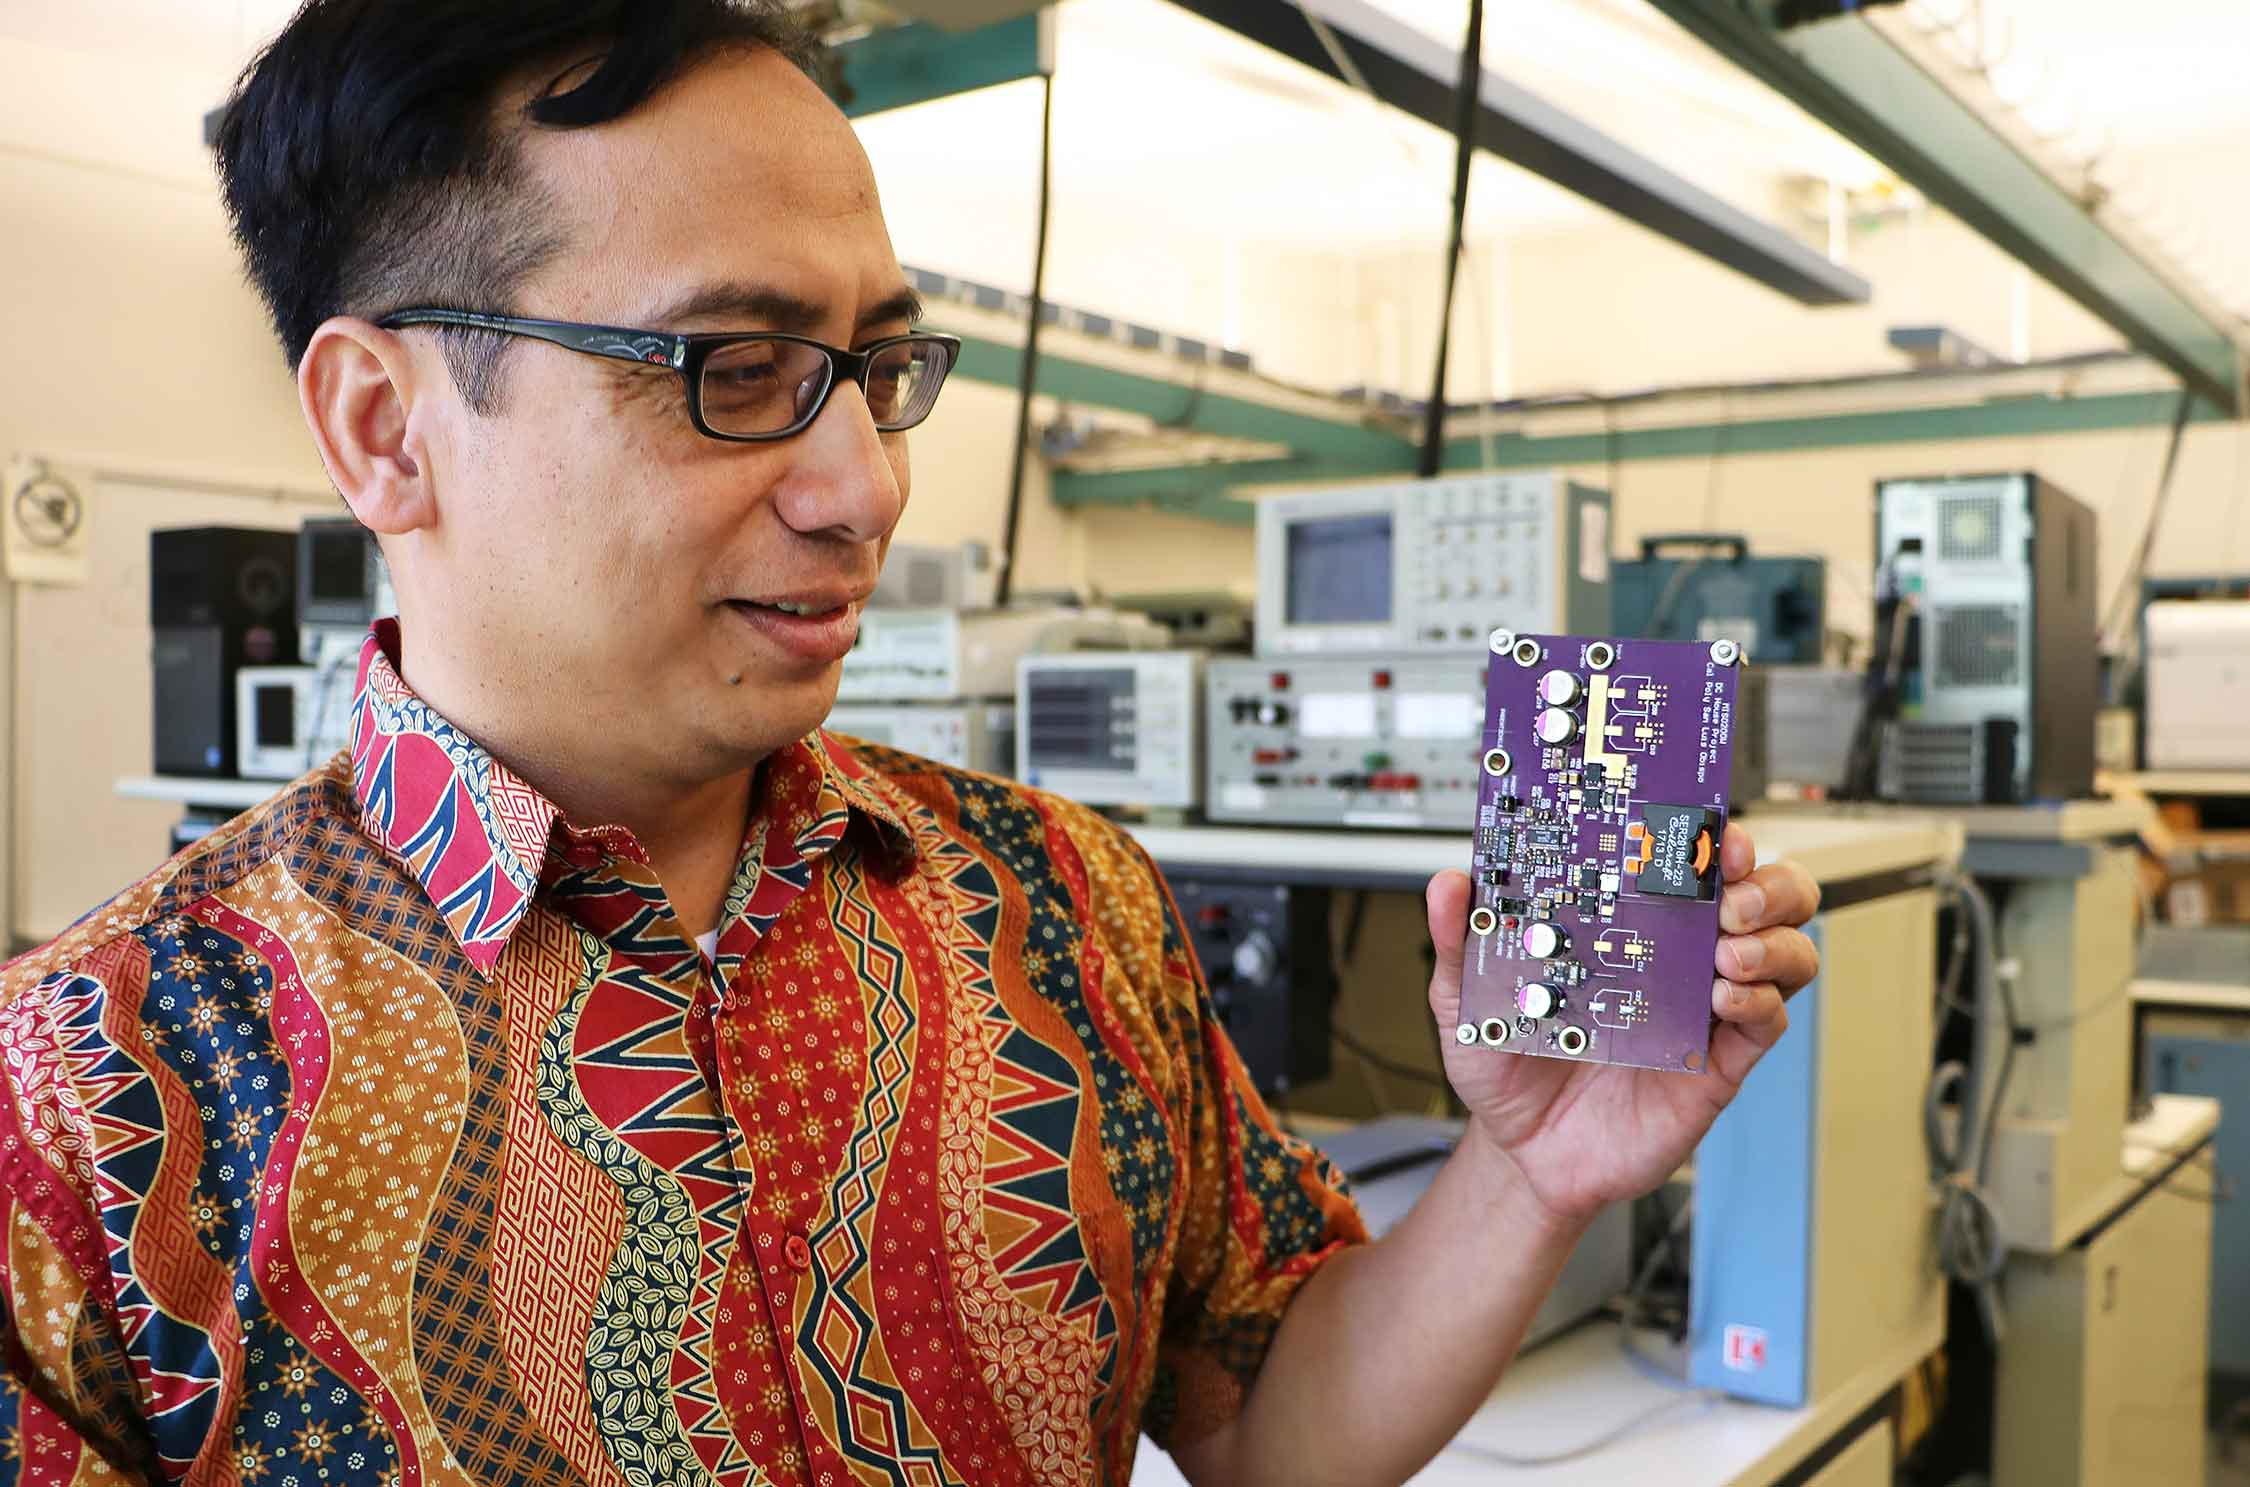 Cal Poly electrical engineering professor Taufik, who uses only one name, holds a prototype of said his soon-to-be patented device that could provide light to the more than 1.6 billion people living far off the grid. The U.S. Patent and Trademark Office has told Taufik that the patent would be awarded this fall